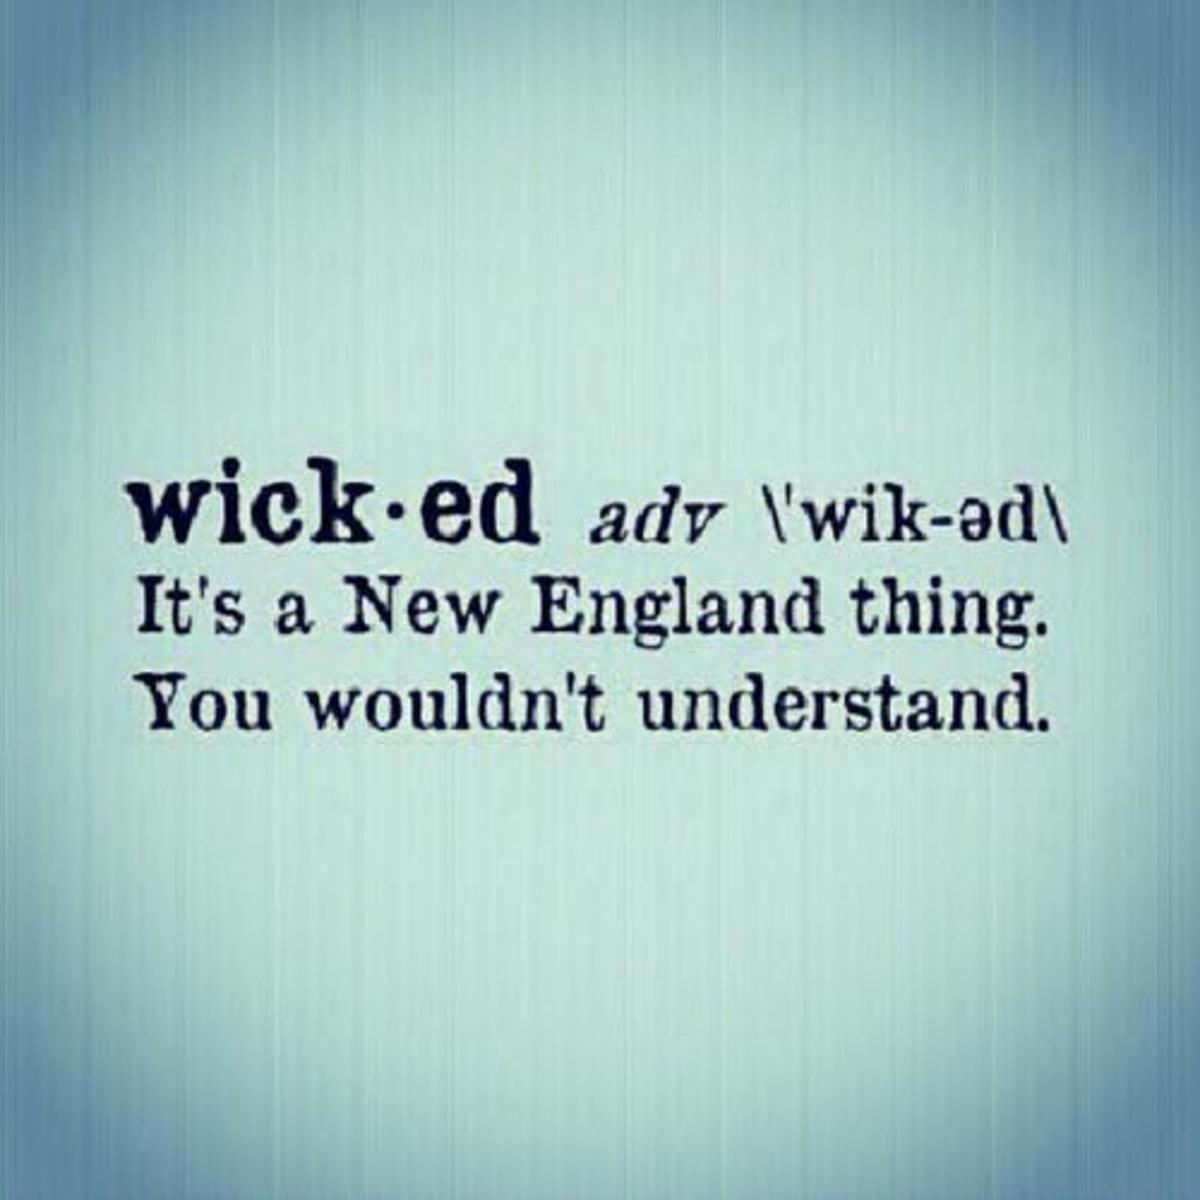 wicked-slang-origin